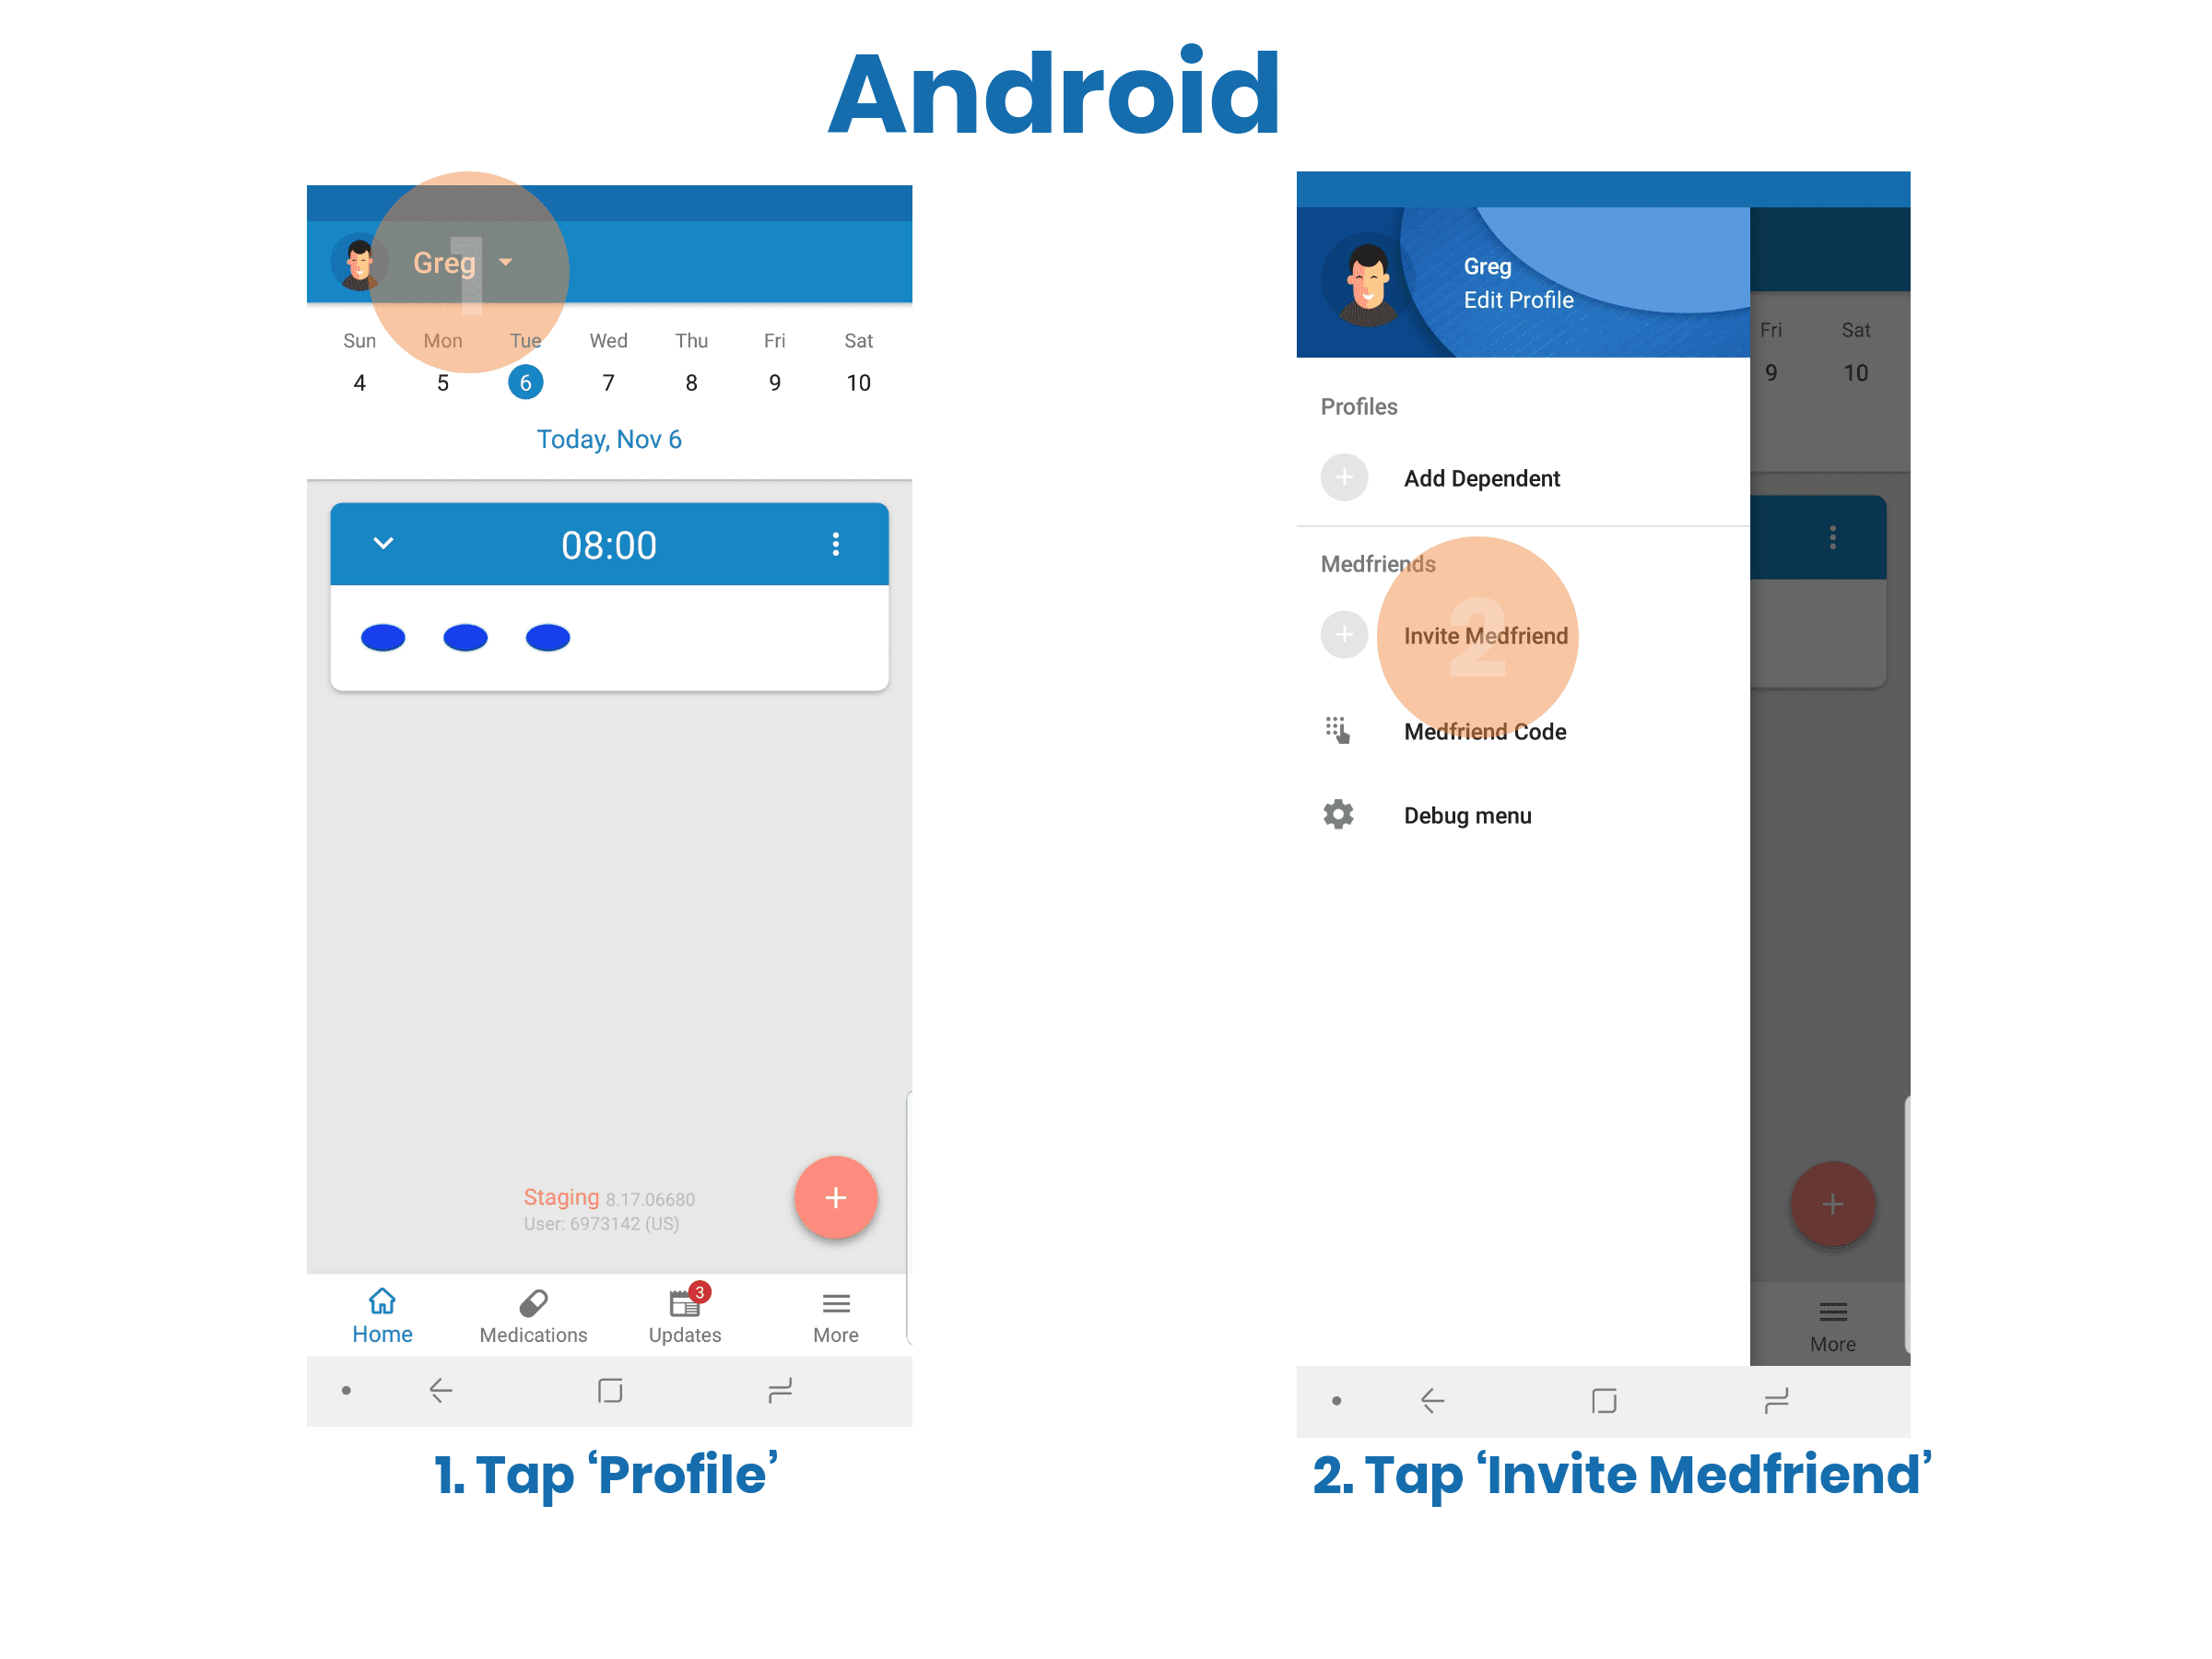 Easily Add a Medfriend to Help Stay on Track